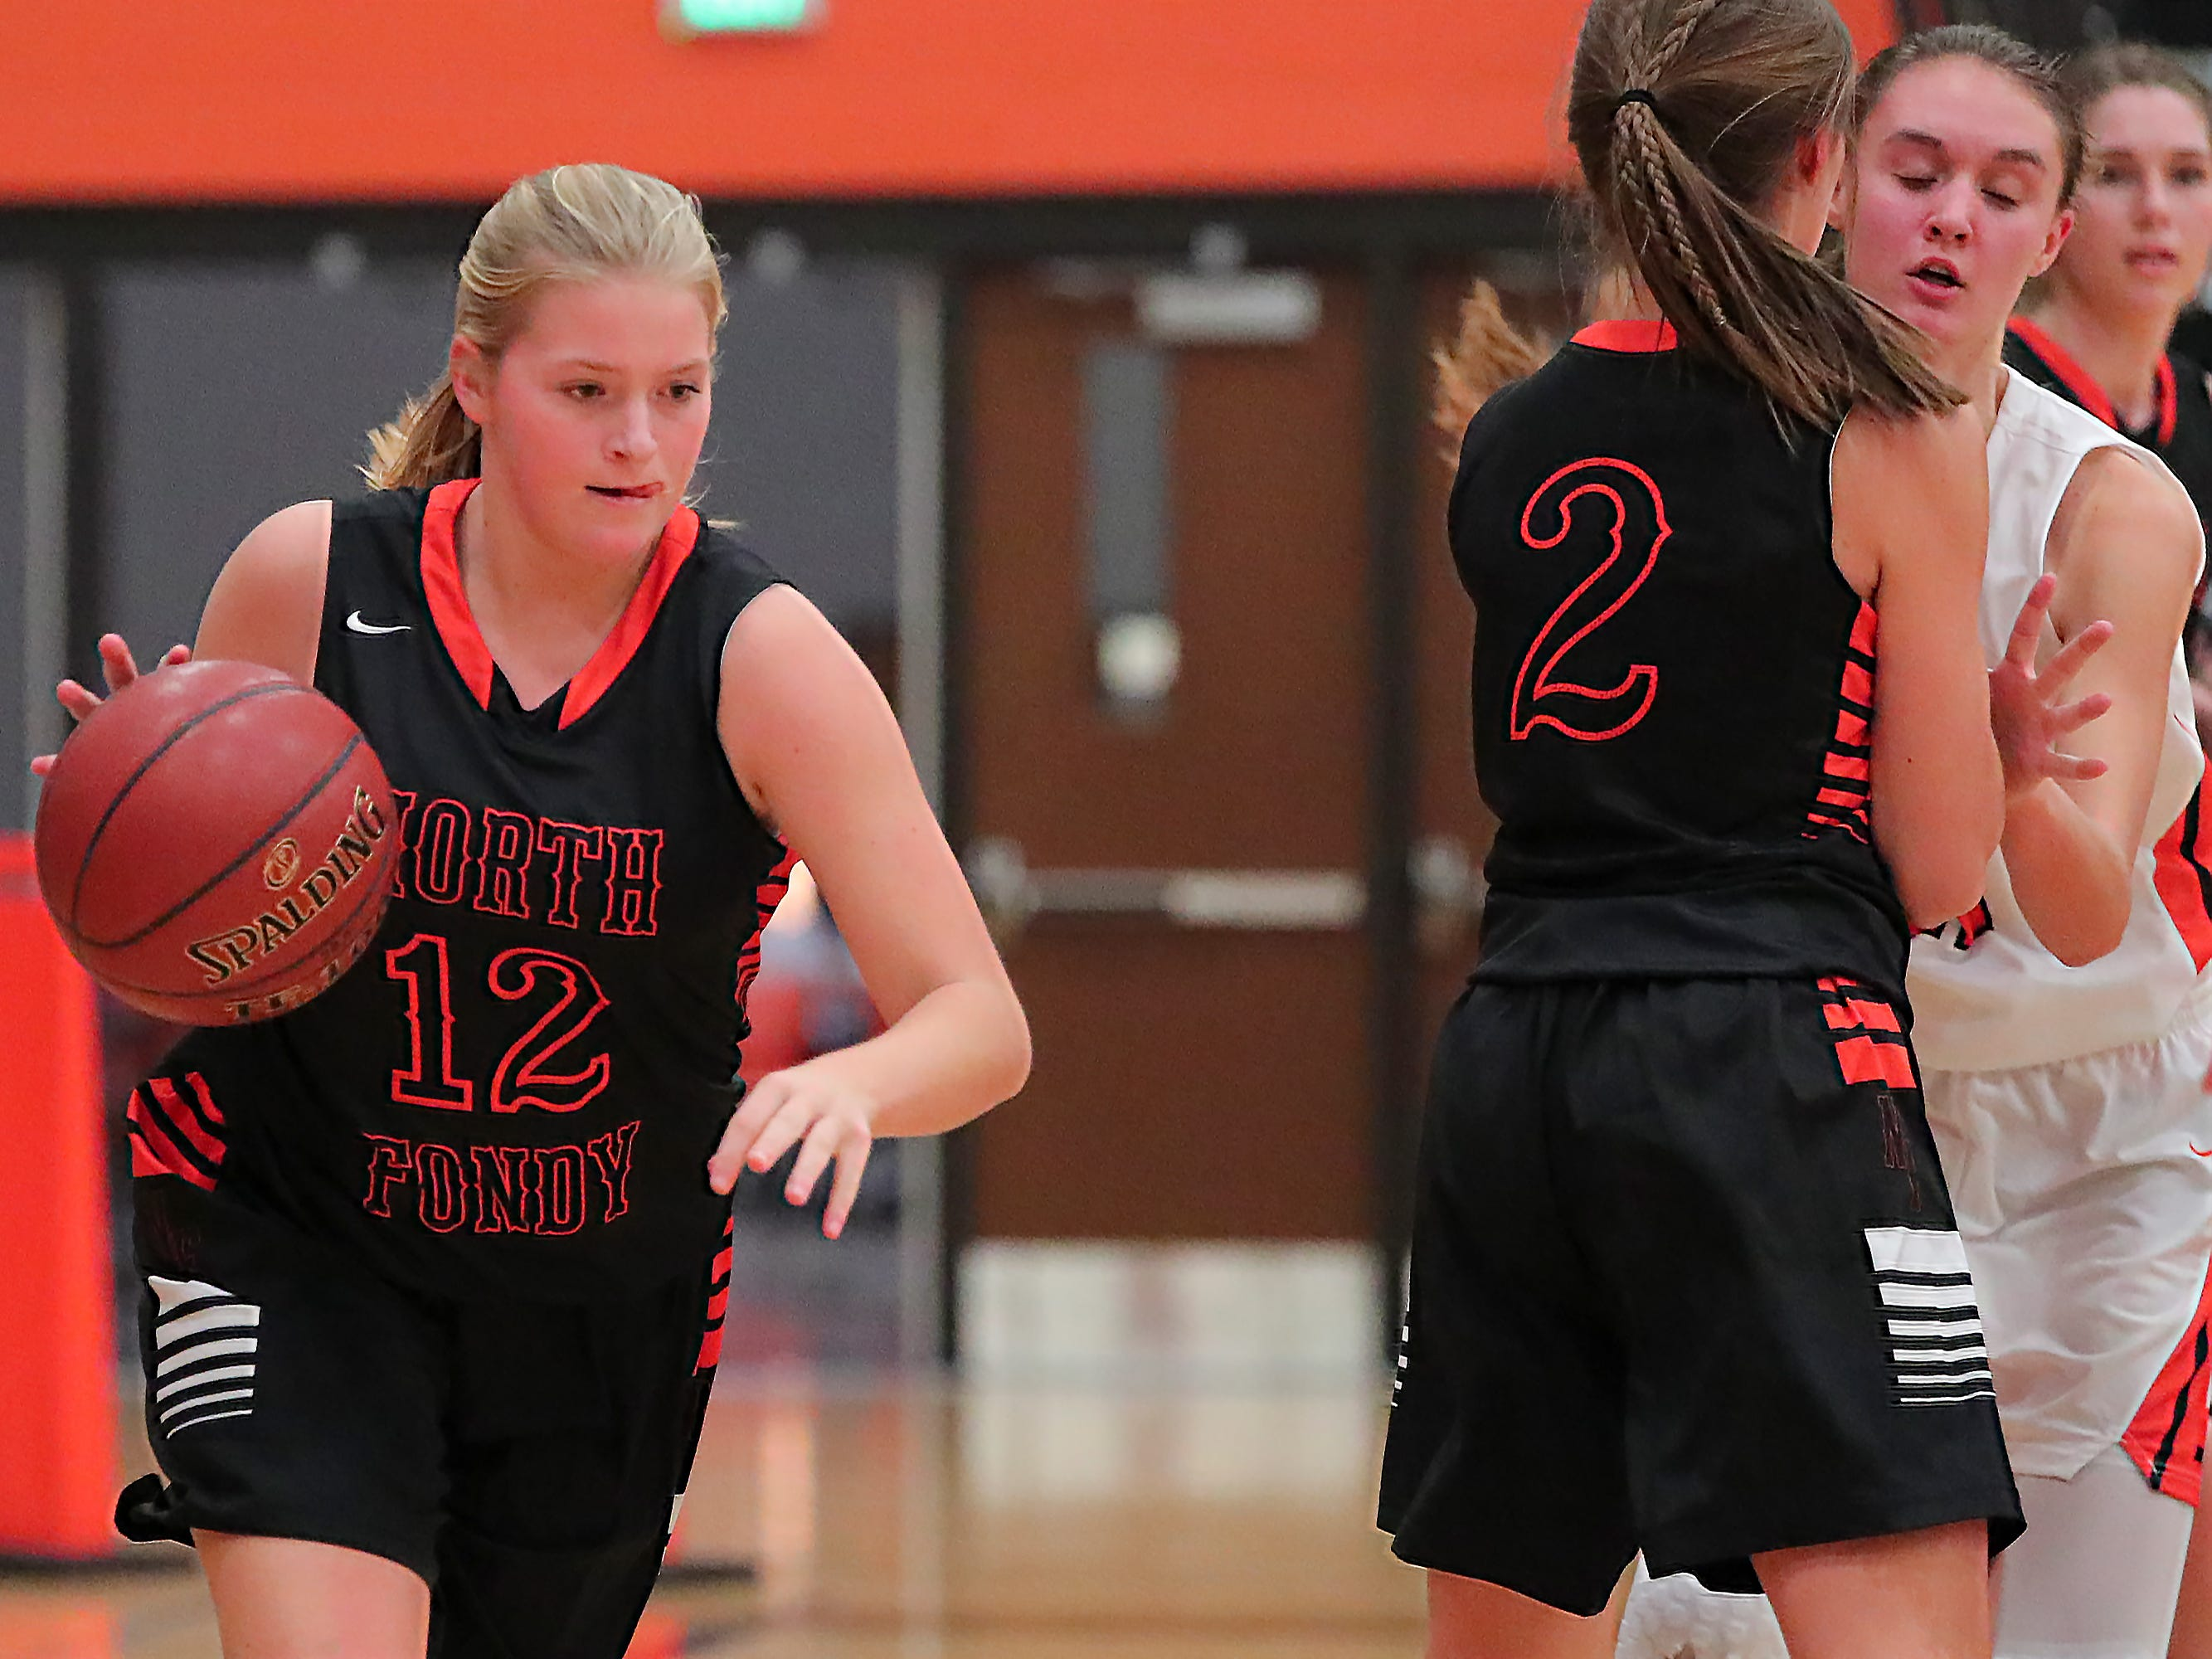 Bree Rock (12) of North Fond du Lac moves the ball down court. The Ripon Tigers hosted the North Fond du Lac Orioles in a non-conference basketball game Thursday evening, November 15, 2018.